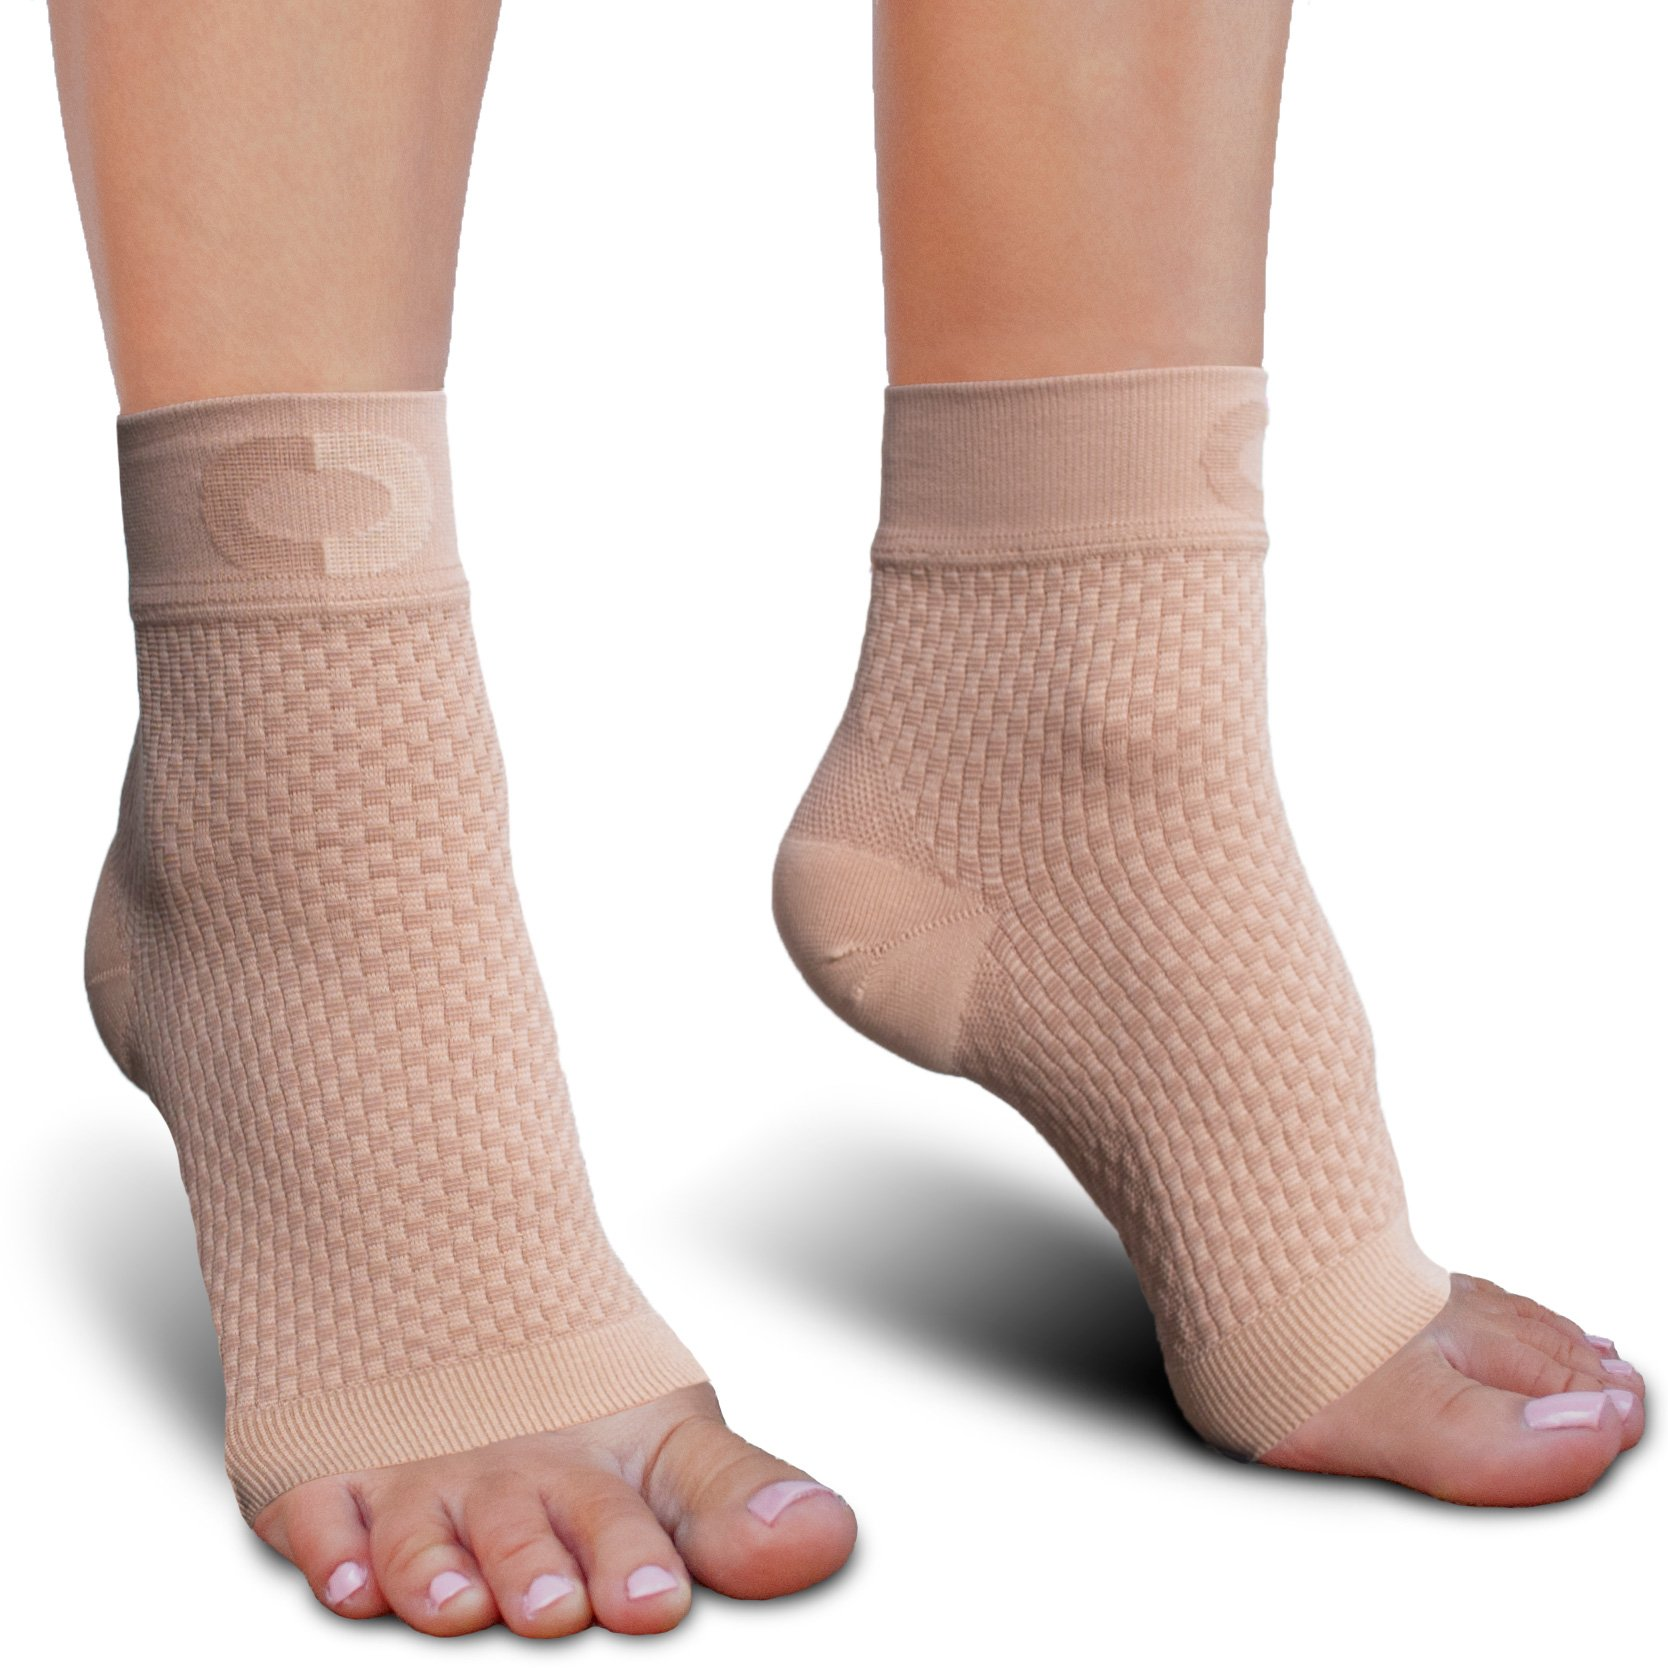 Plantar Fasciitis Sock Arch Support Men & Women - Best Ankle Compression Socks Foot Heel Pain Relief - Better Than Night Splint Brace, Orthotics, Inserts, Insoles